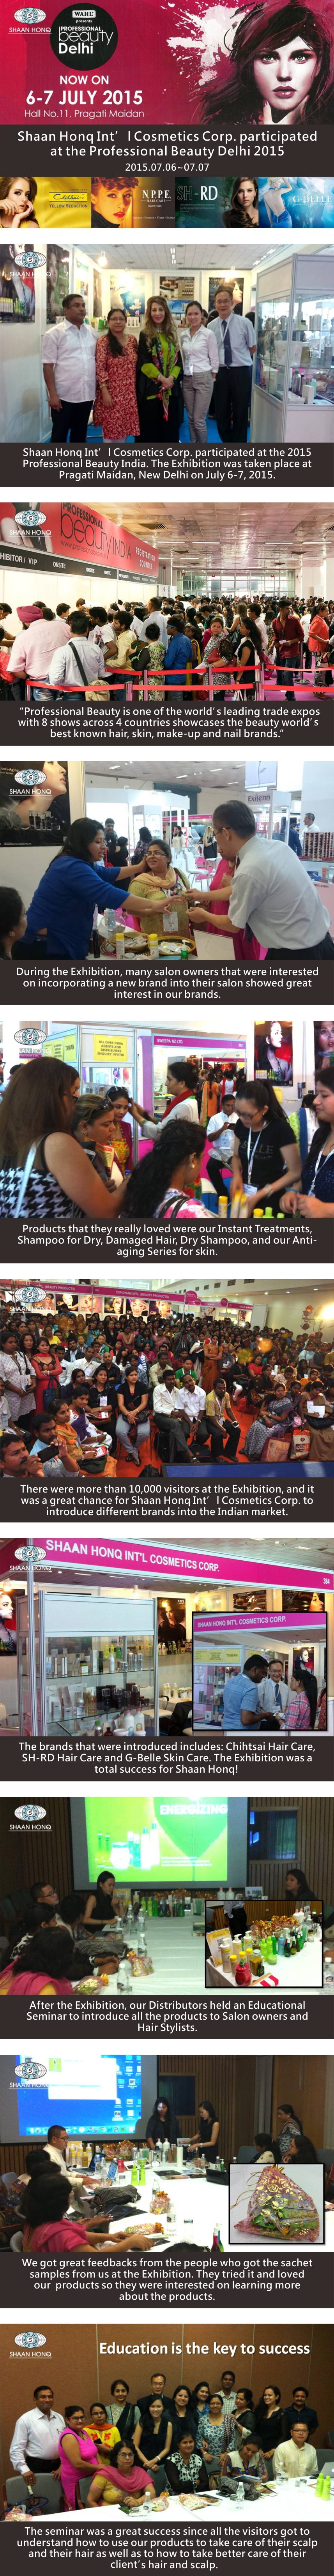 Shaan Honq Int'l Cosmetics Corp.participated at the Professional Beauty Delhi 2015